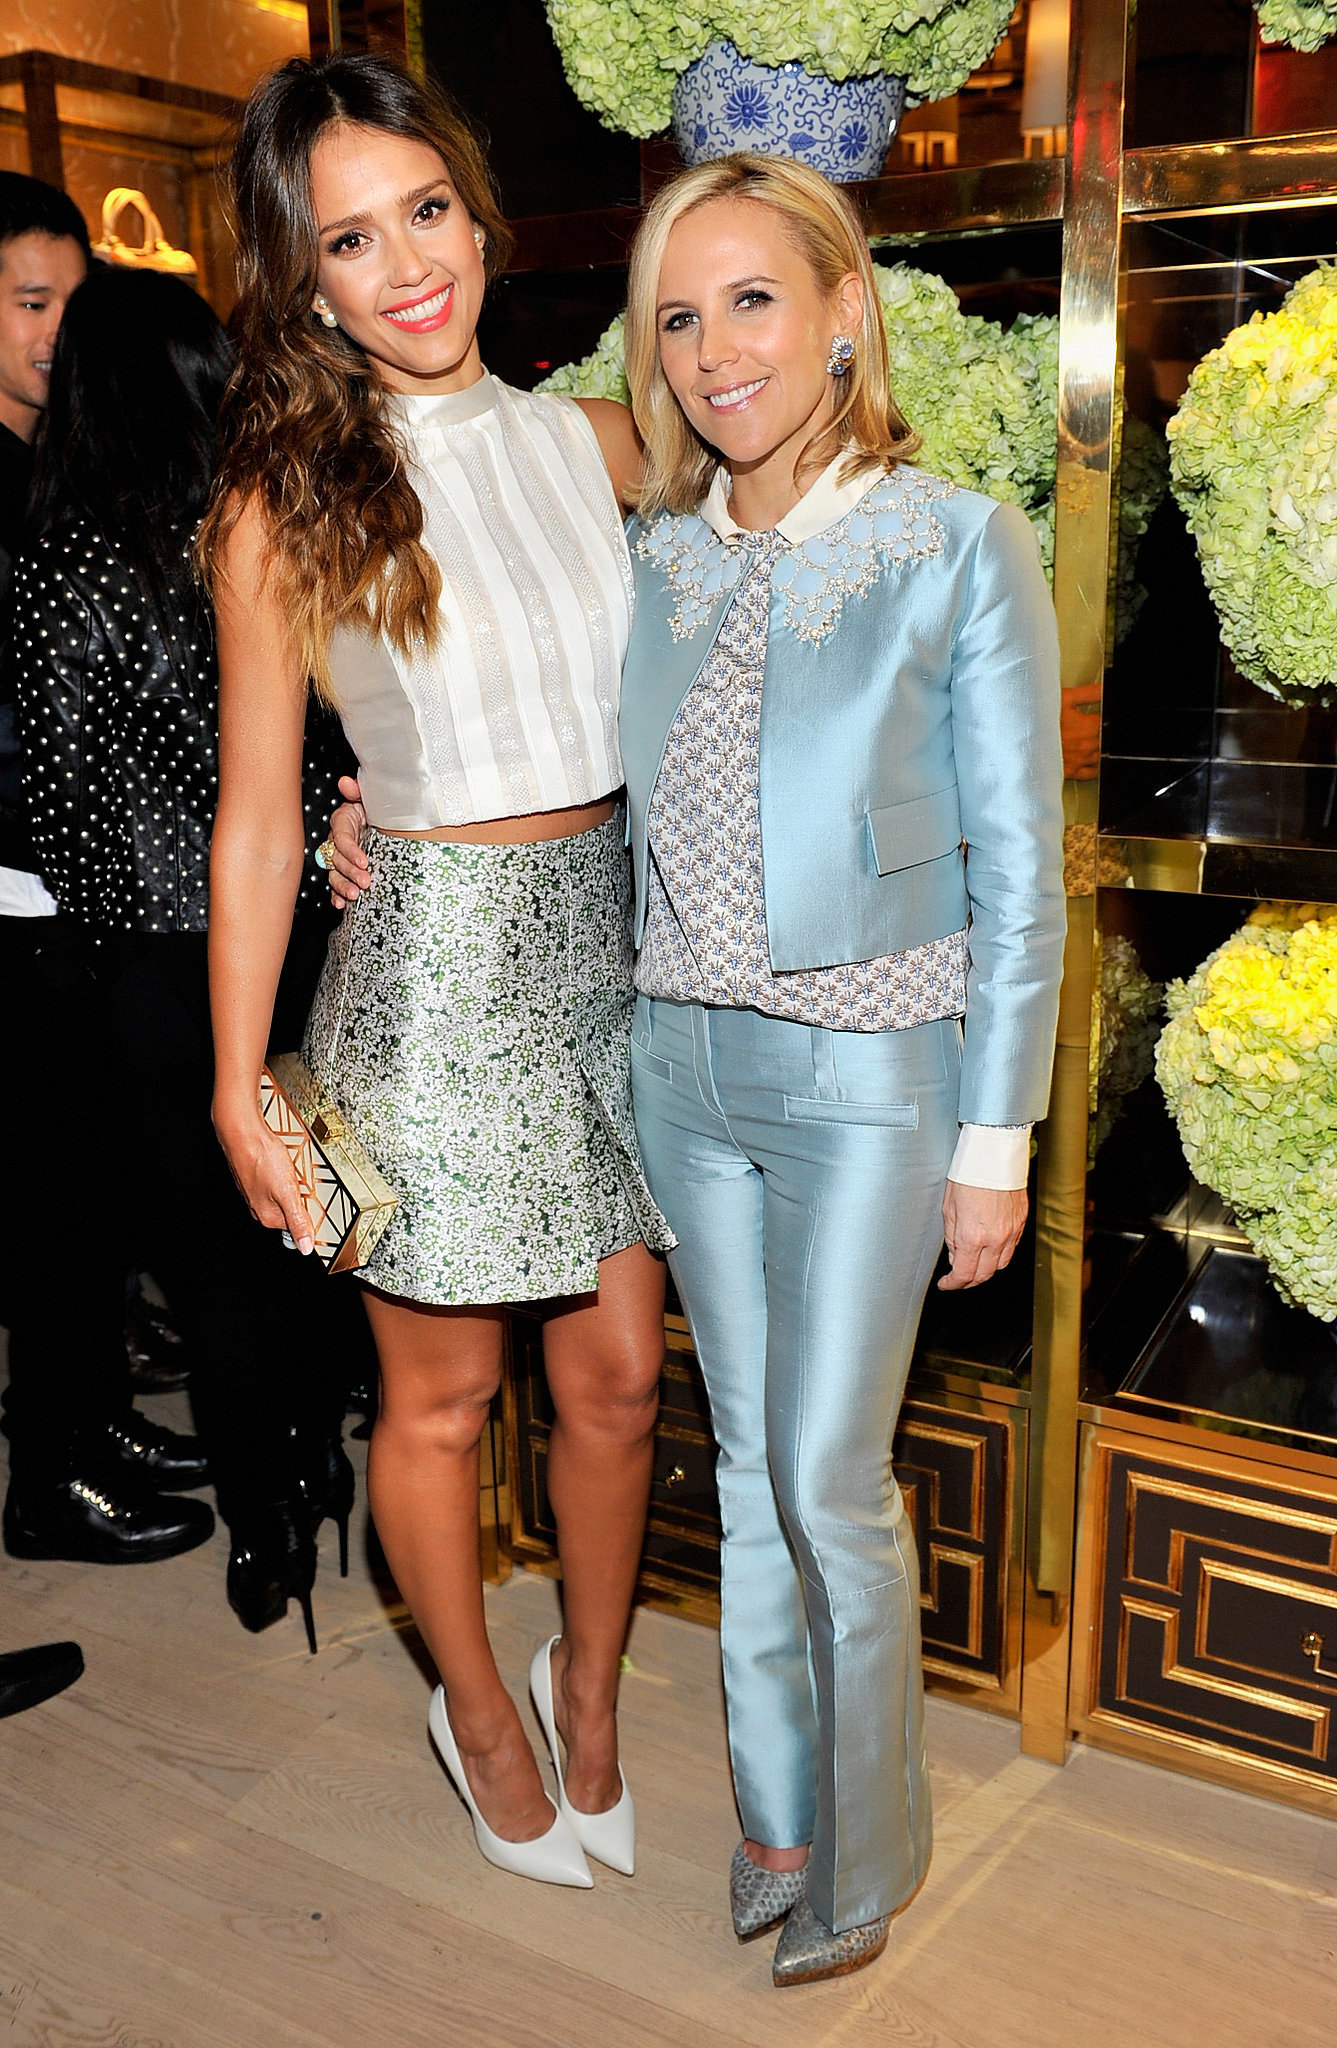 Jessica Alba and Tory Burch at the Tory Burch Rodeo Drive flagship opening.